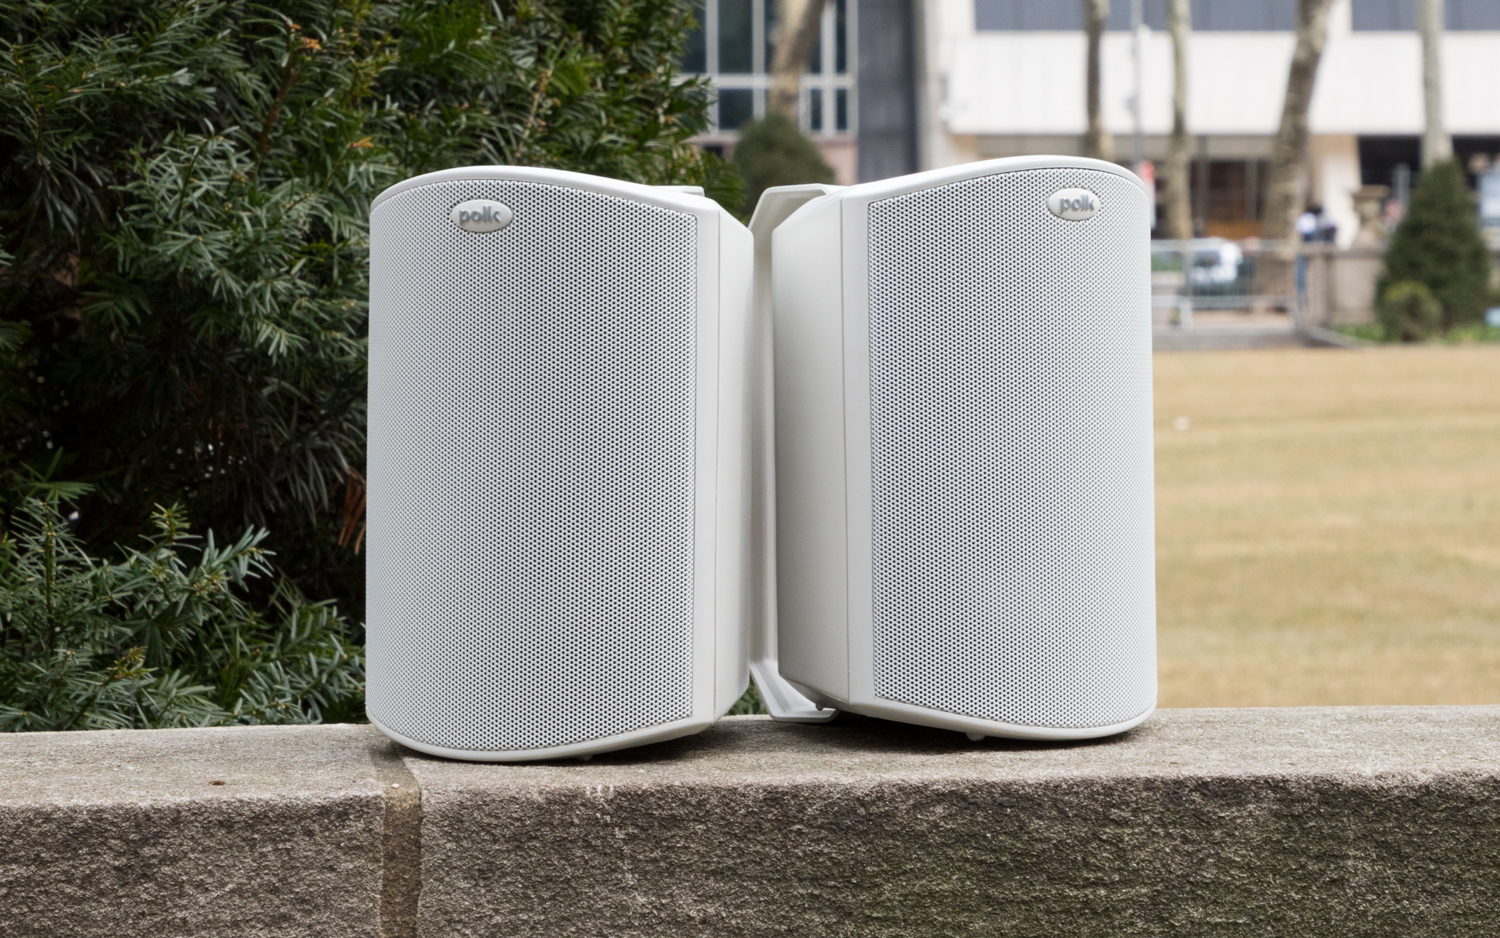 Want to know more about the best outdoor speakers